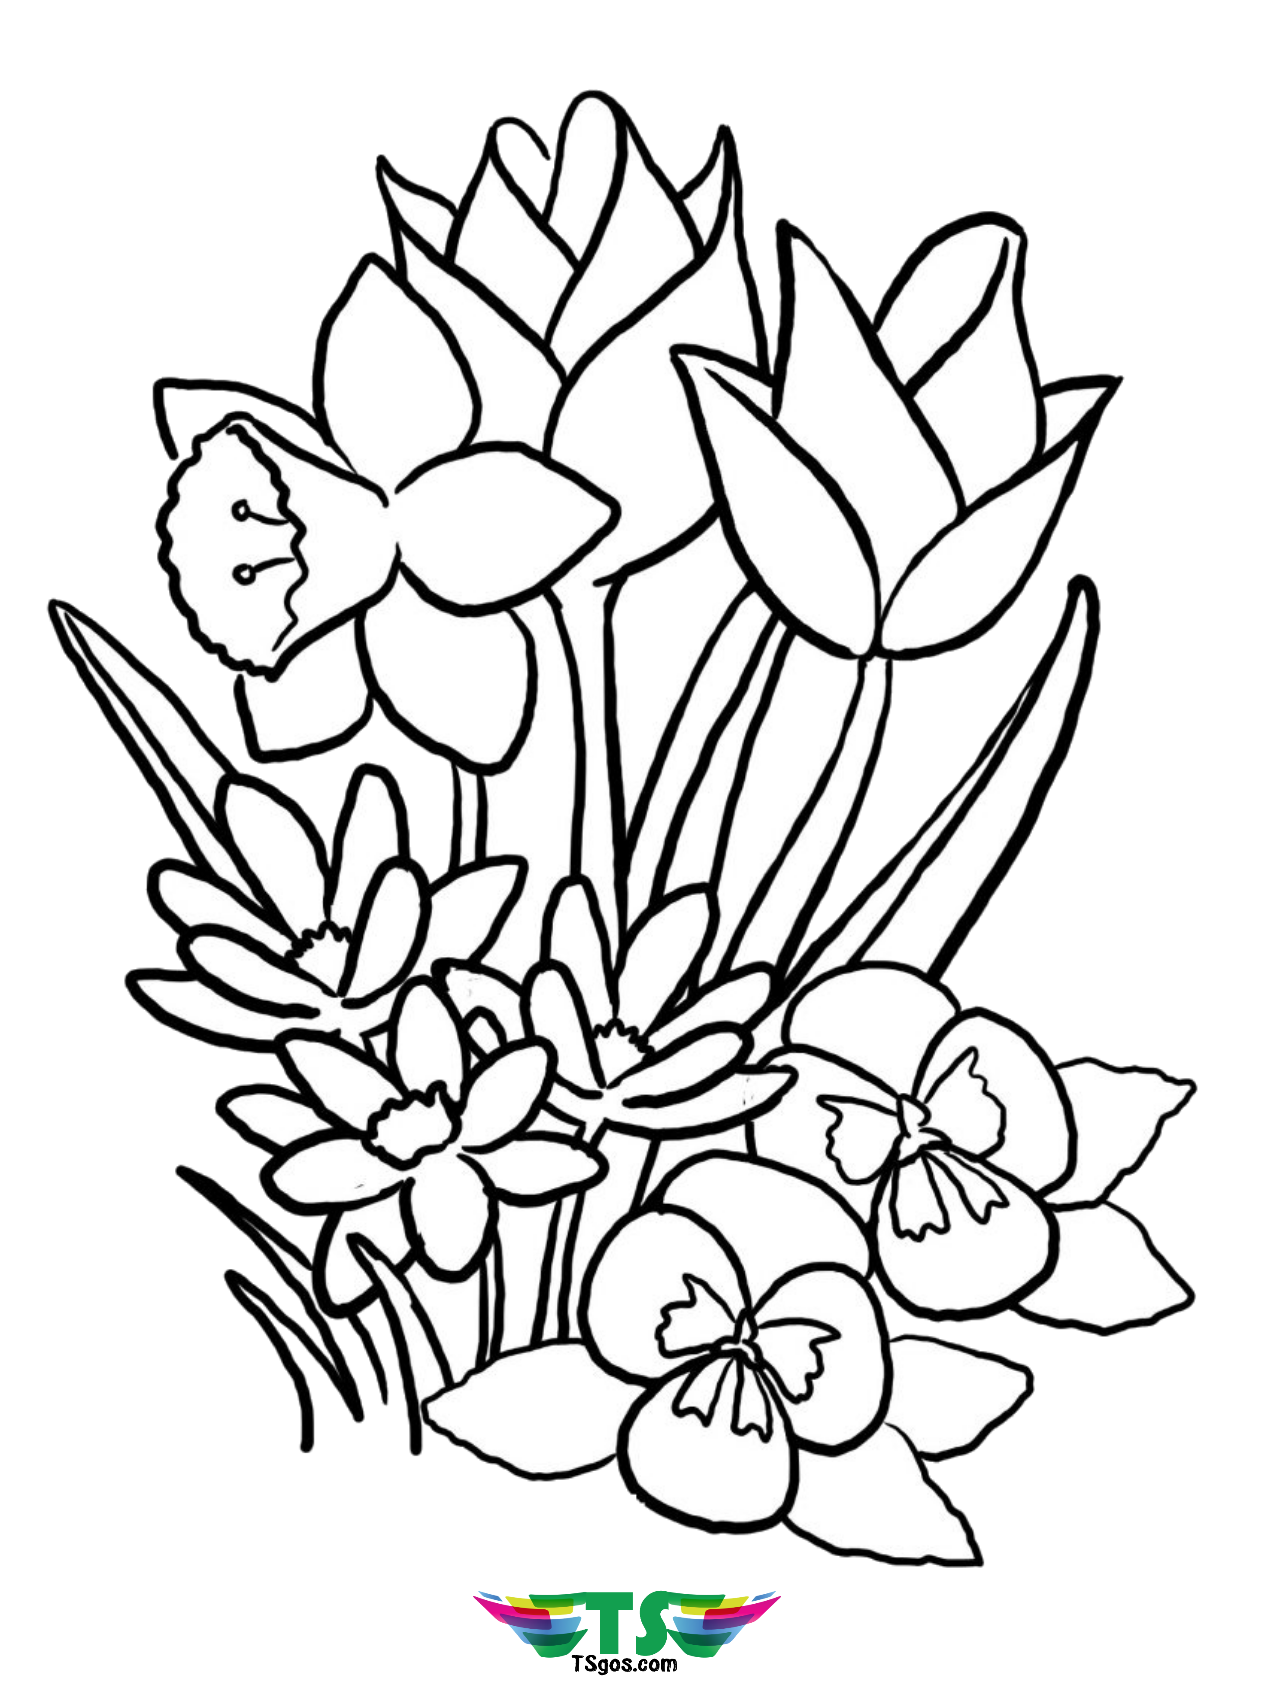 for coloring pictures free printable baby coloring pages for kids for coloring pictures